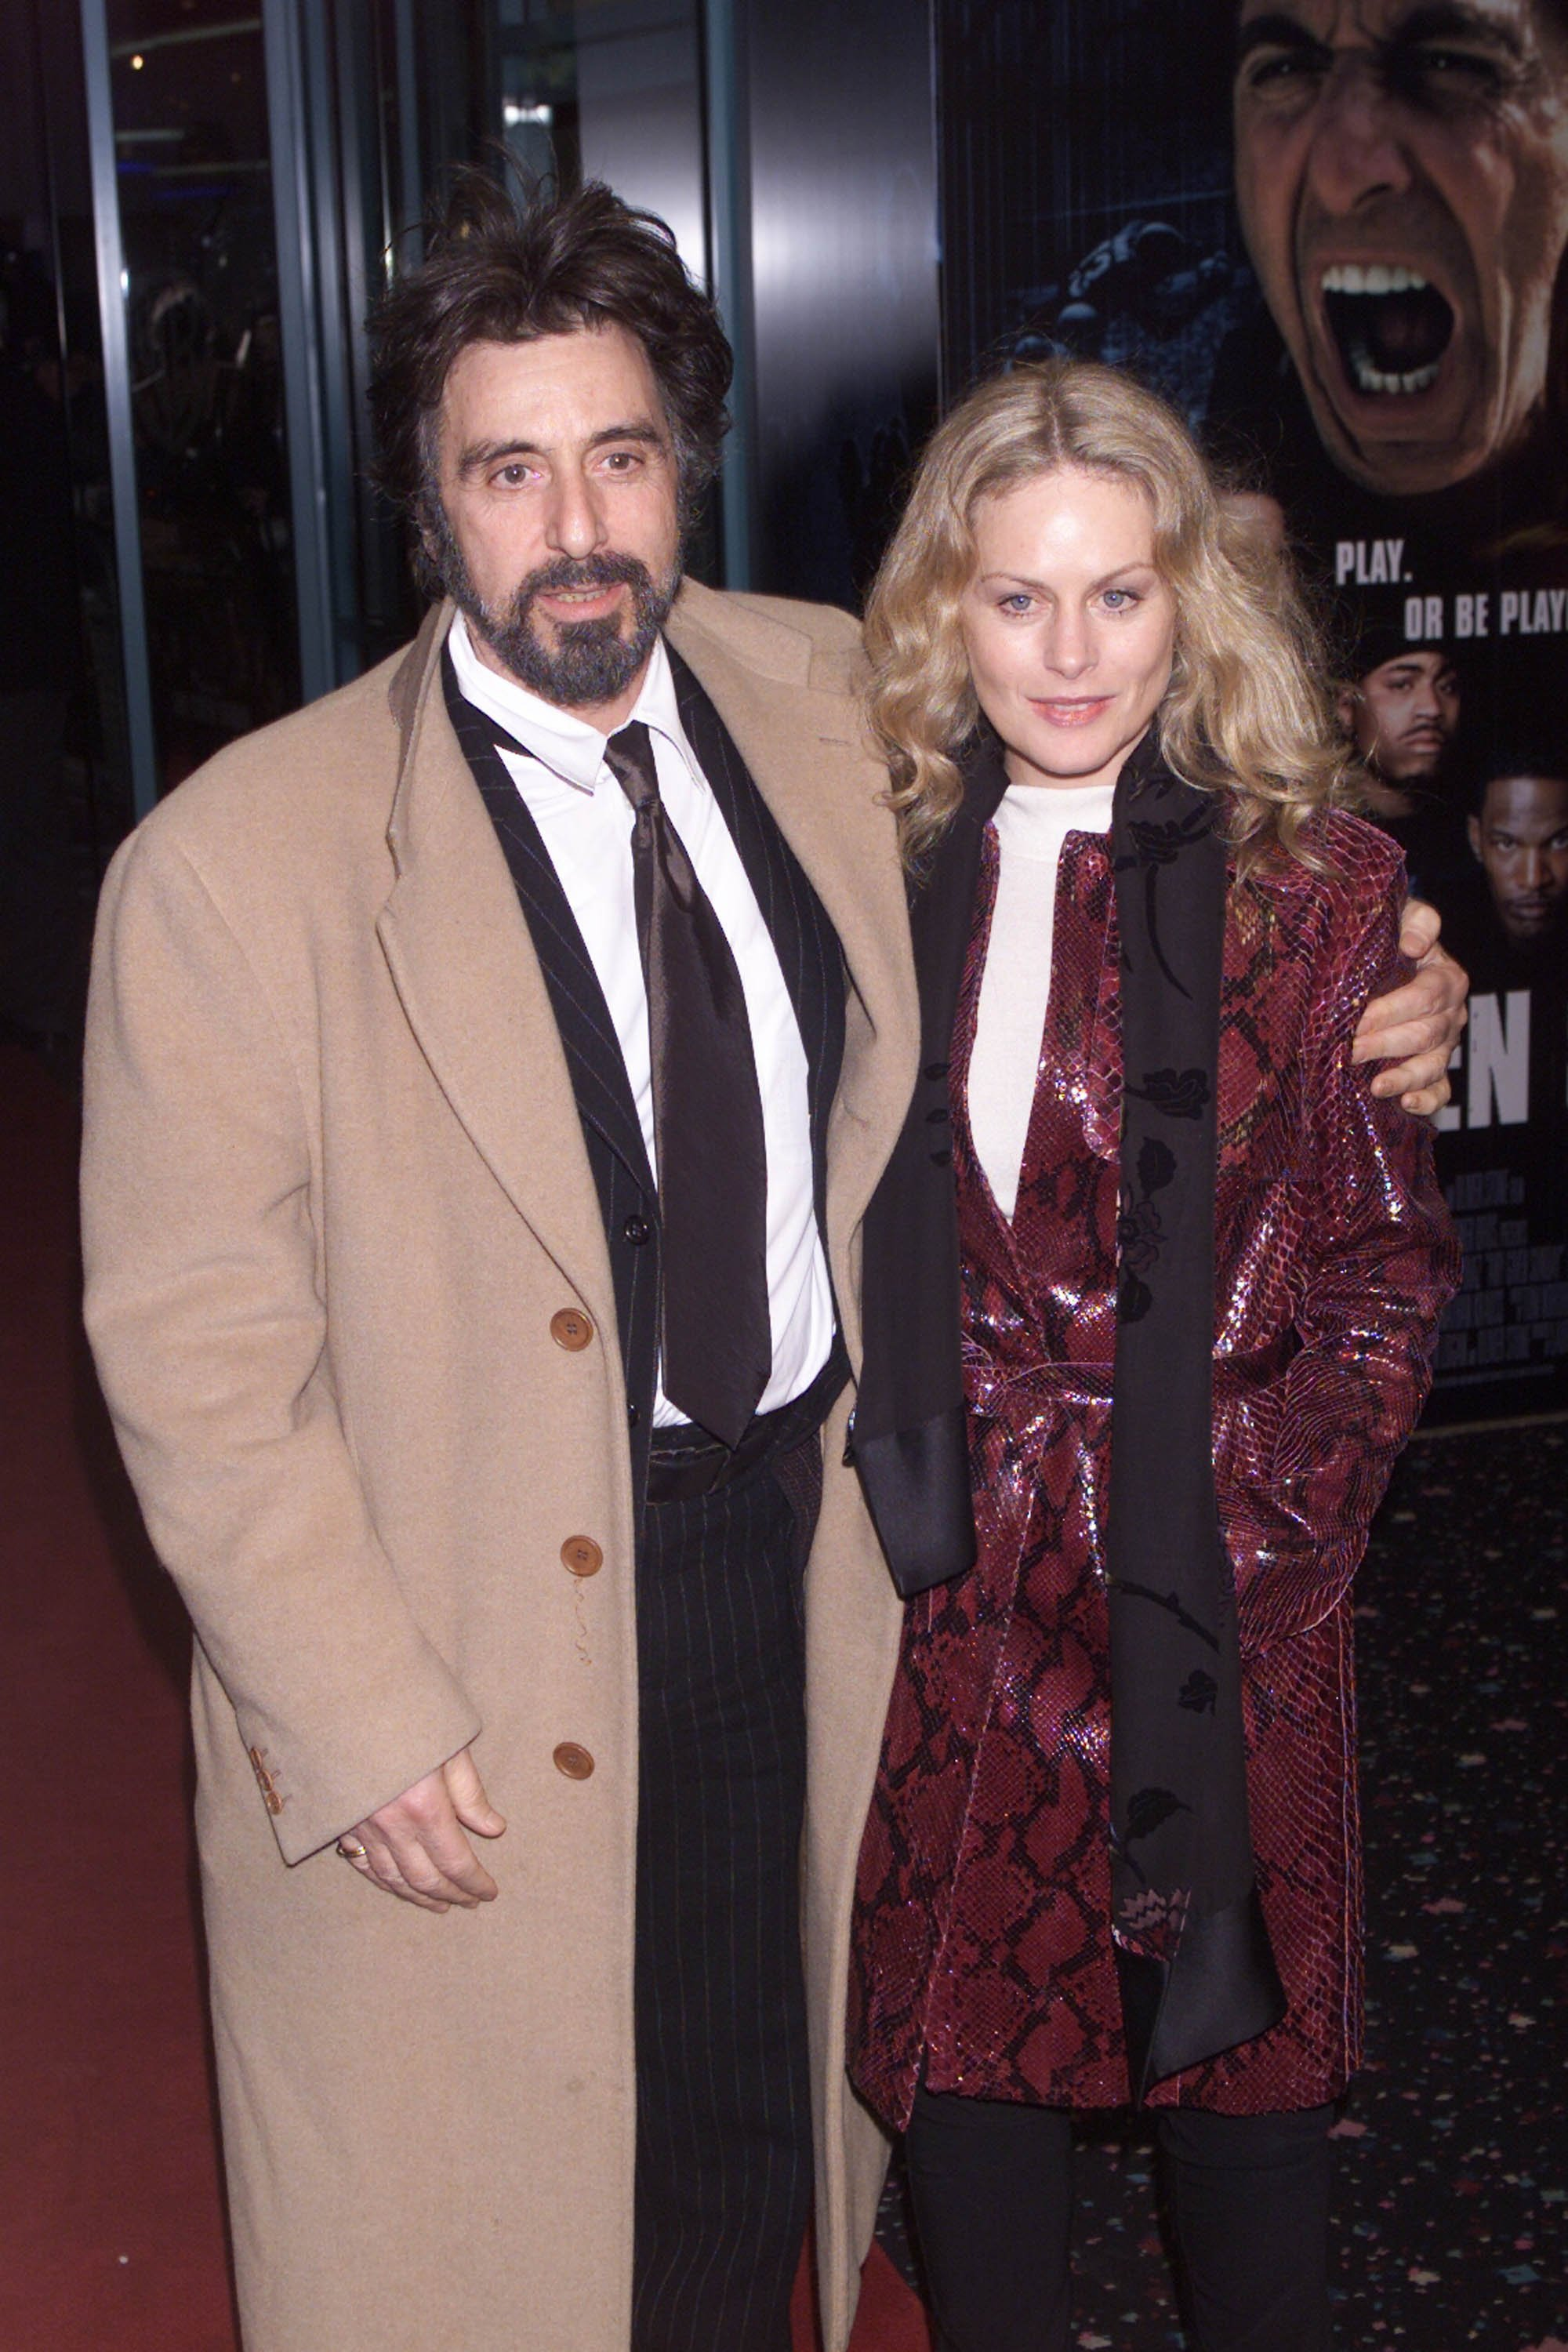 """Al Pacino & Beverley D'Angelo at the UK premiere of the film """"Any Given Sunday"""" on March 29, 2000 